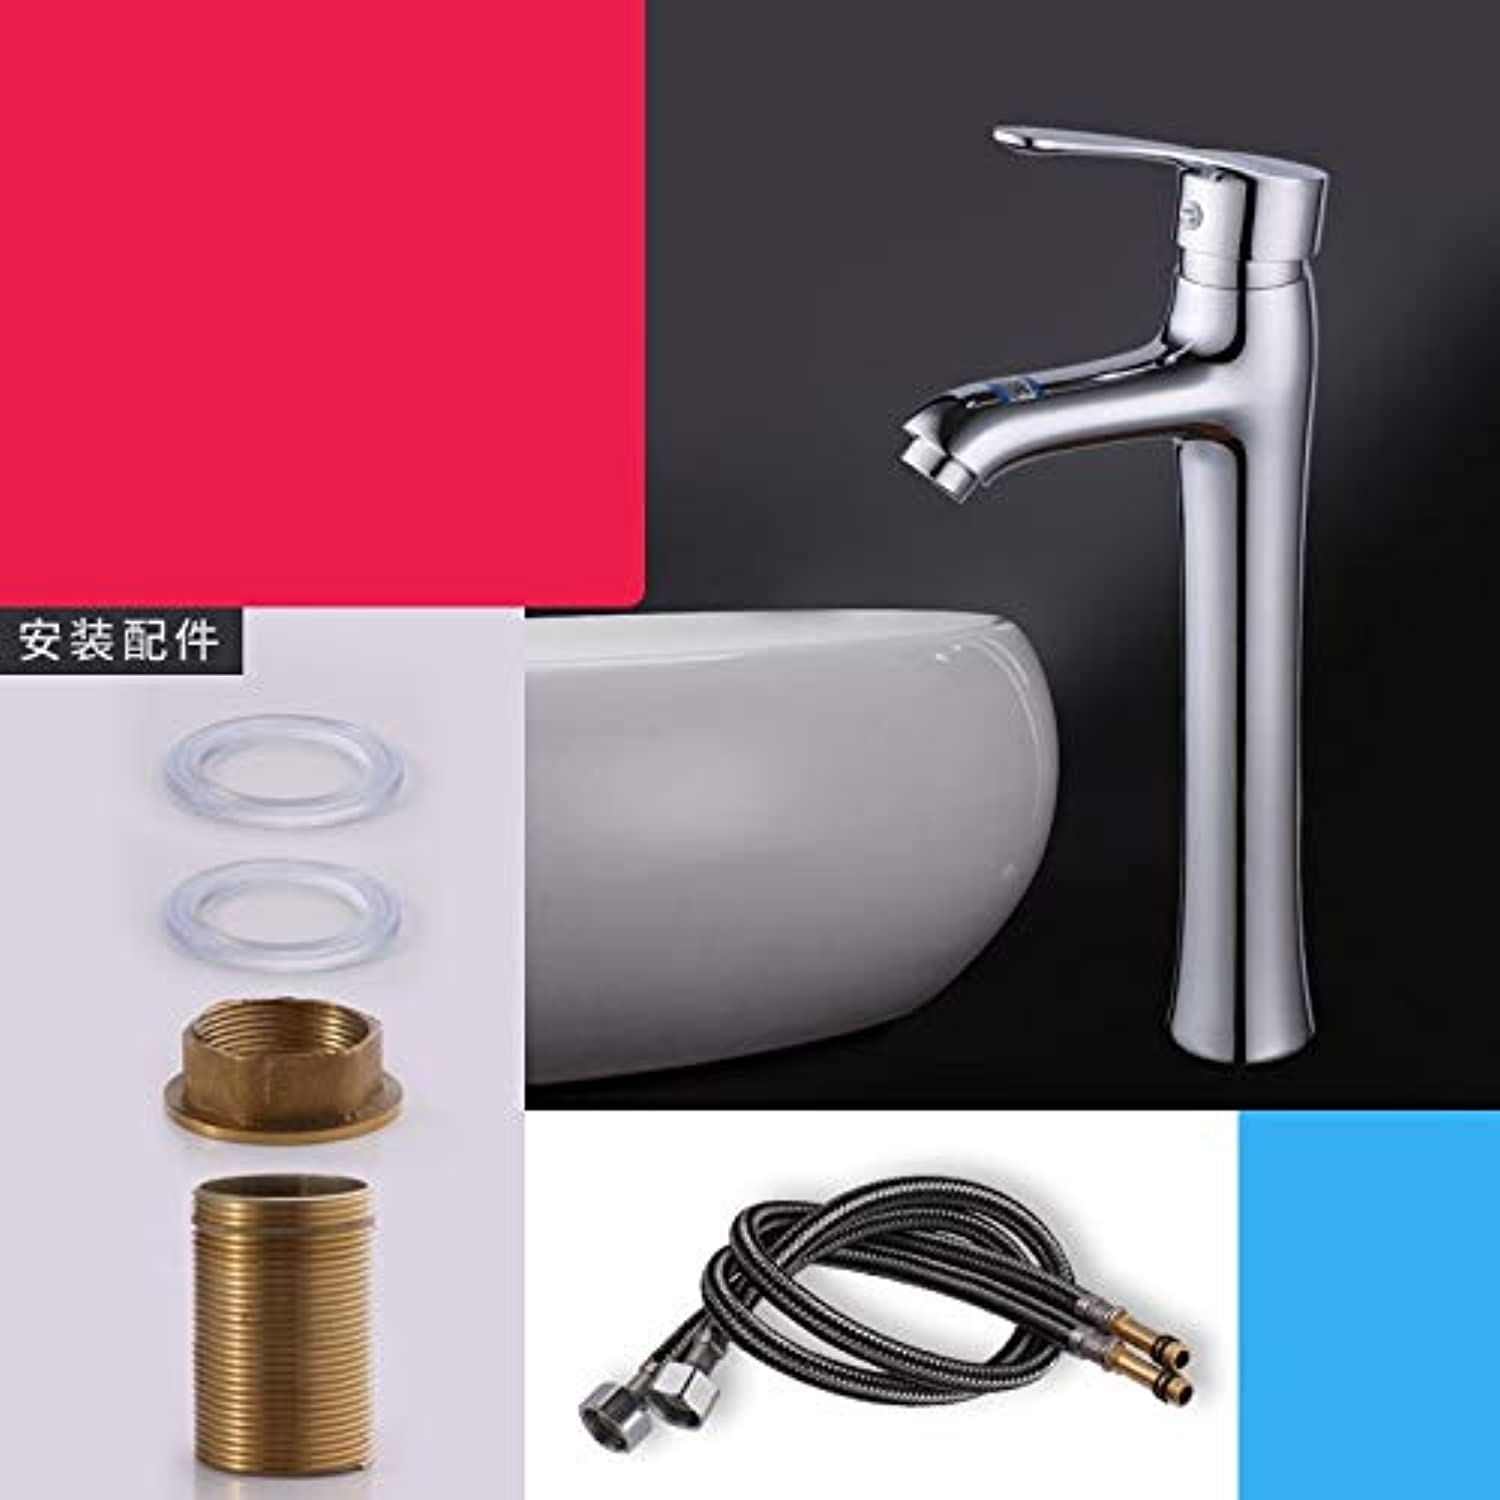 JWLT faucets Copper Bathtub, hot and Cold Water Faucet, Single Hole Lavatory, Bathroom Cabinet, wash Basin, Basin top pots,The Cold Water hot tap 60CM on The Stage has 2 Water Inlet Pipes.